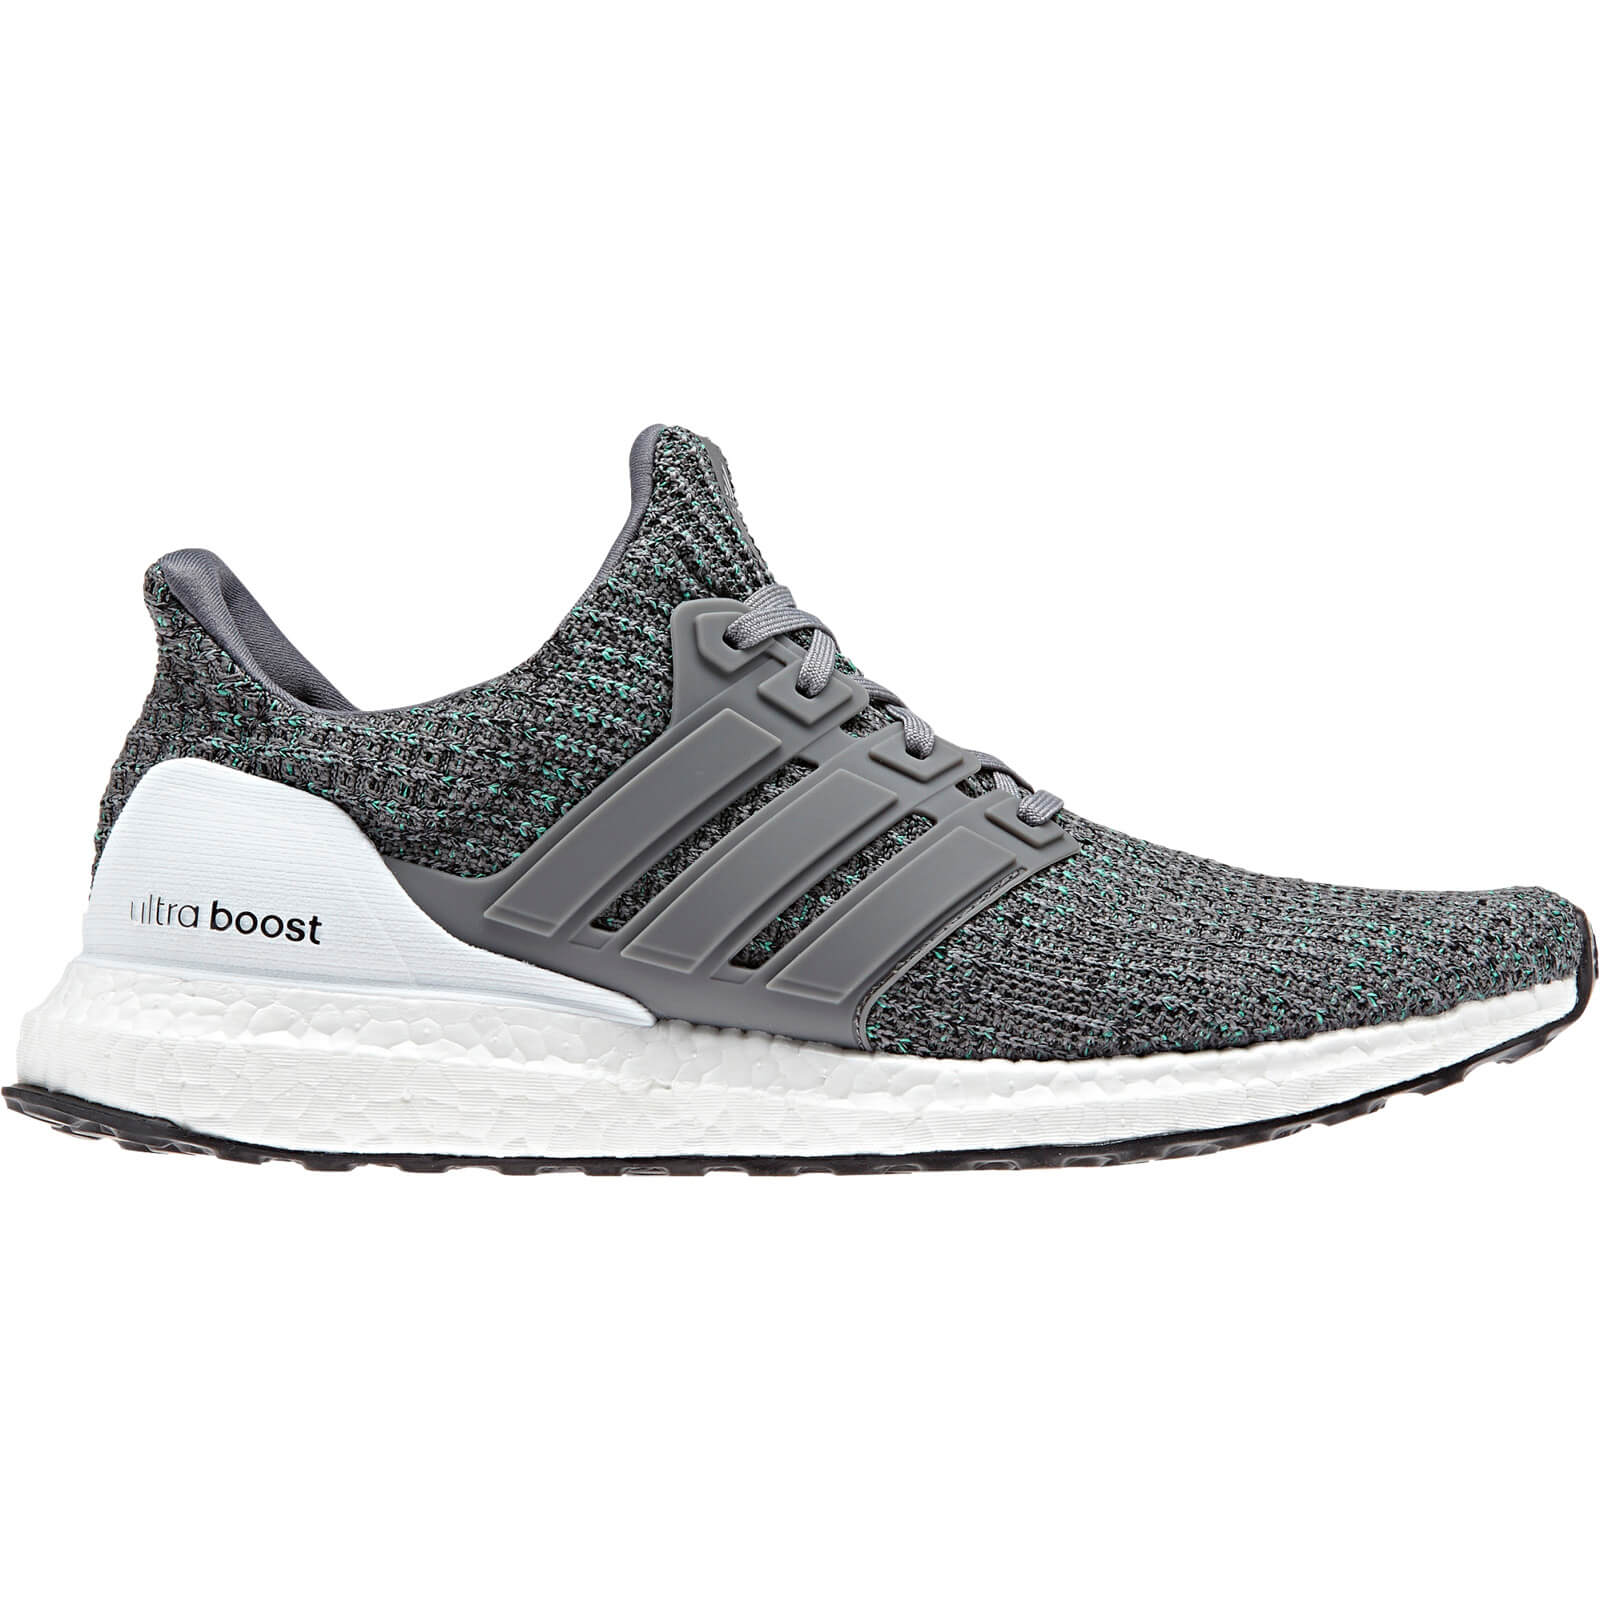 0ce5f71ce adidas Men s Ultraboost Running Shoes - Grey Green